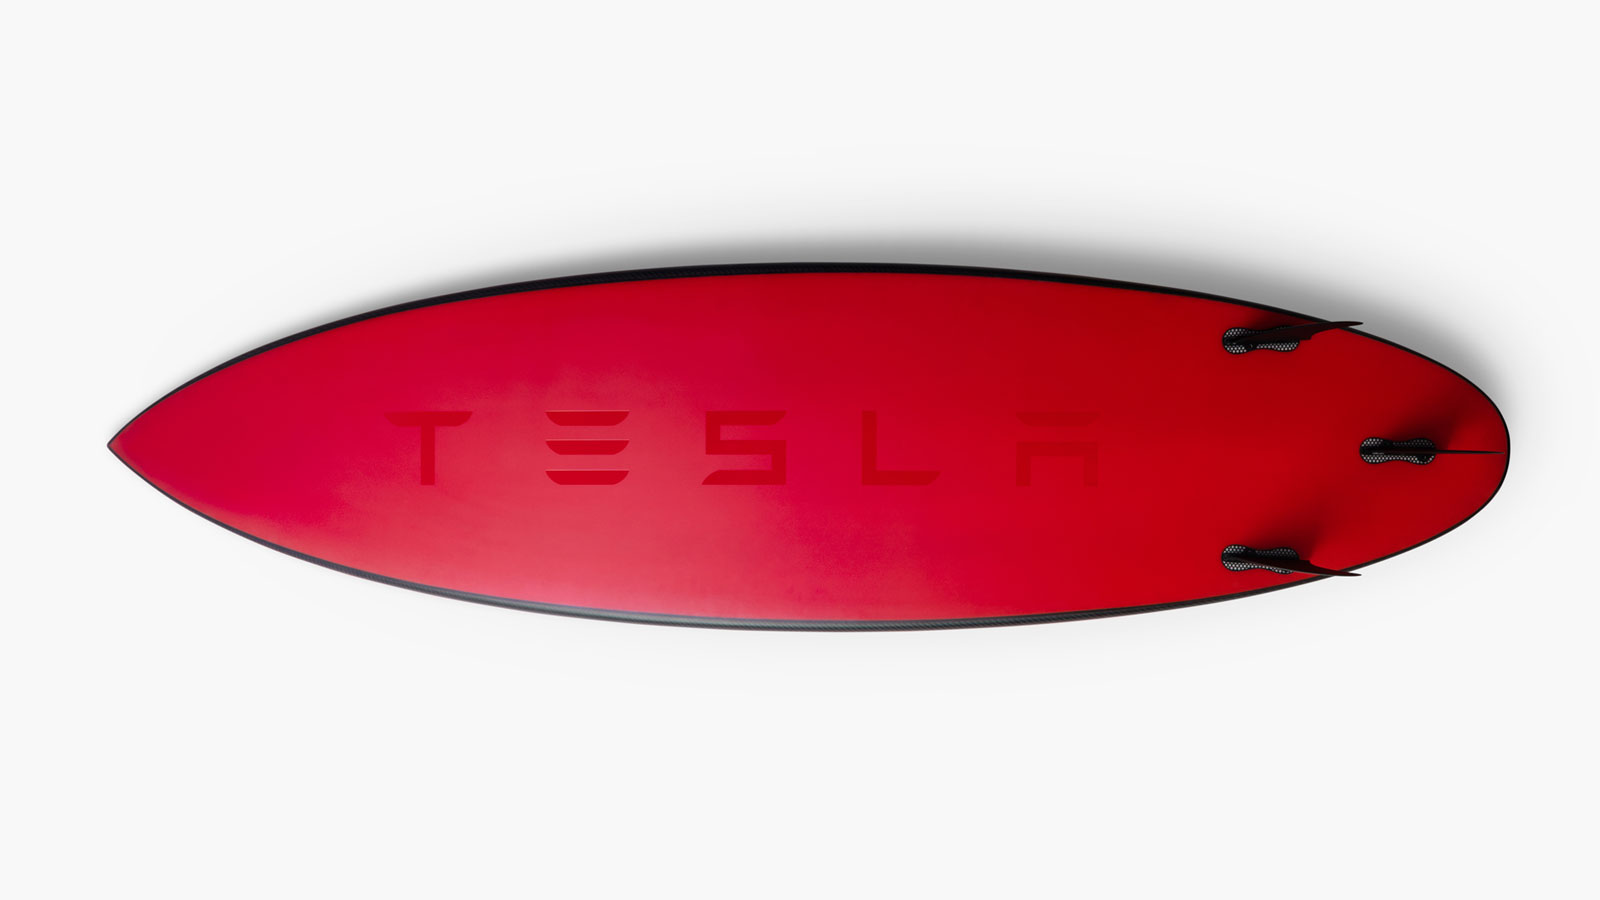 Ce pret are prima placa de surf a Tesla